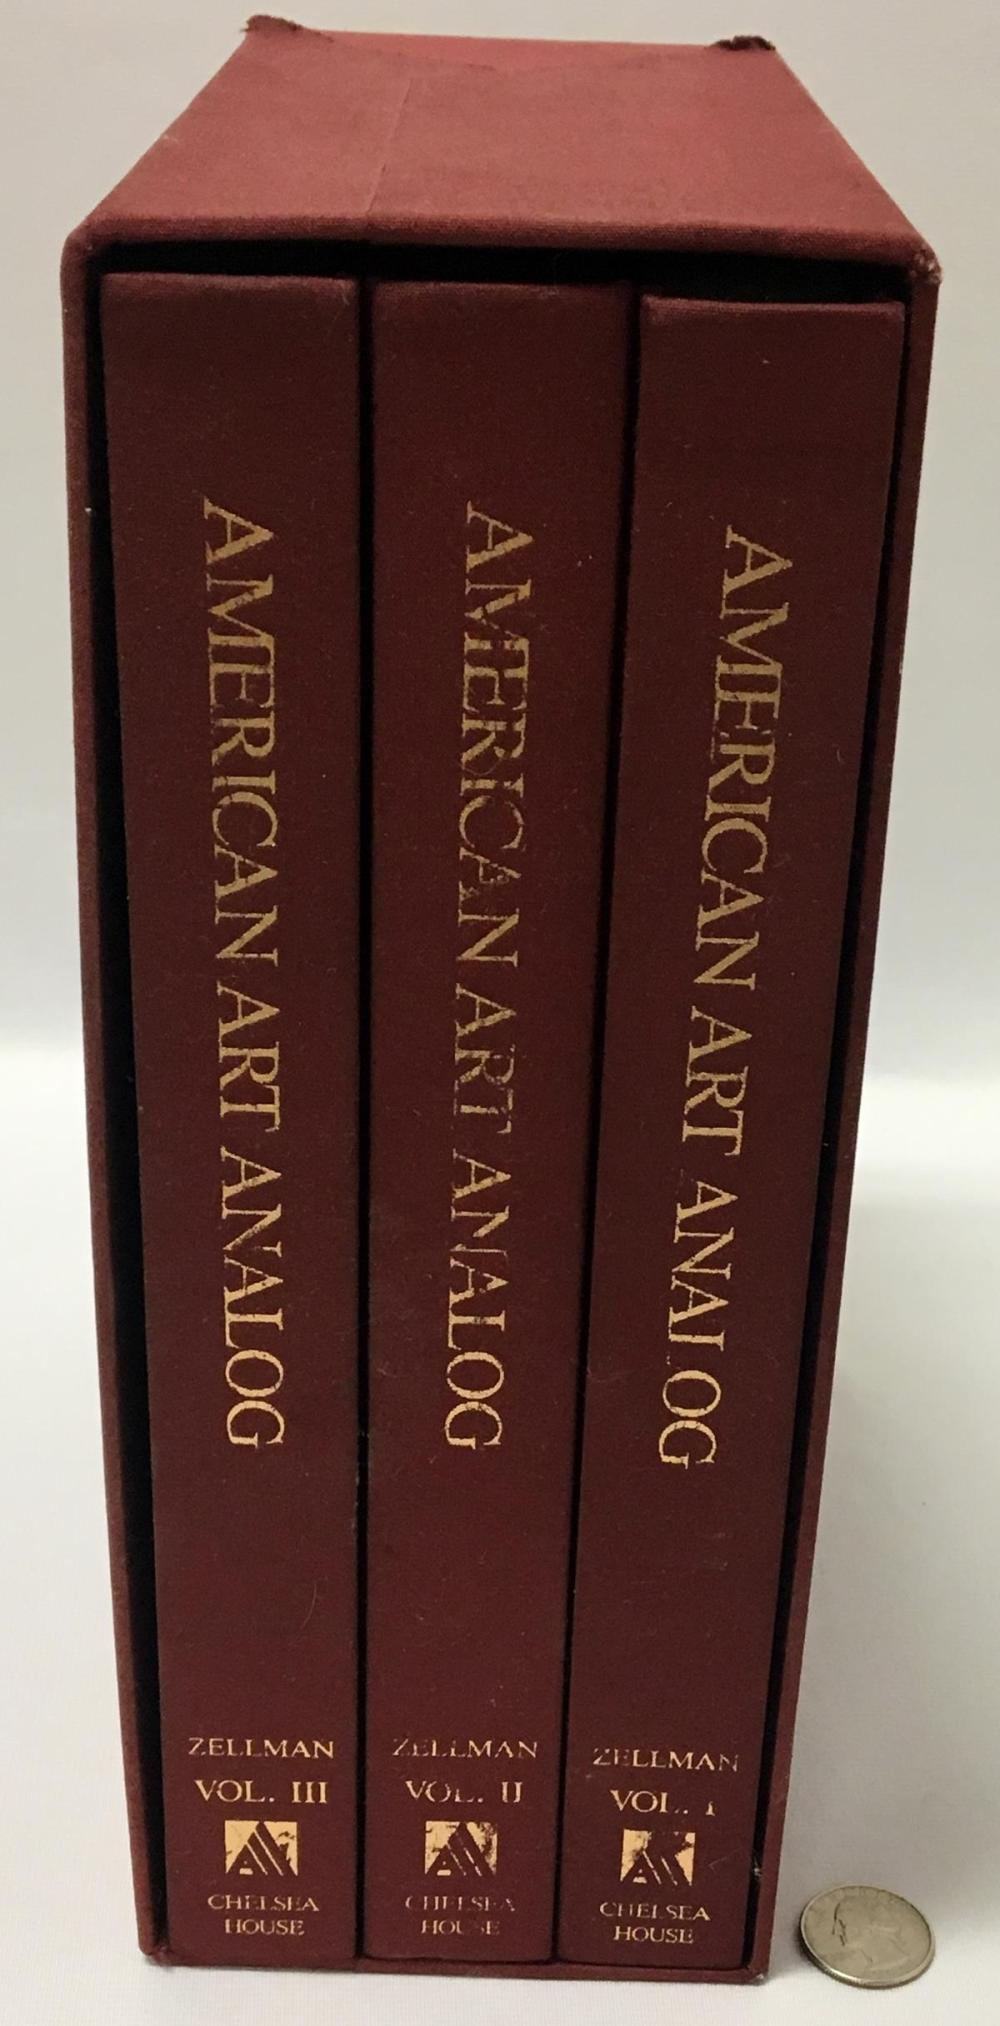 Vintage 1986 American Art Analog Vol. I-III by Michael David Zellman w/ Original Storage Box